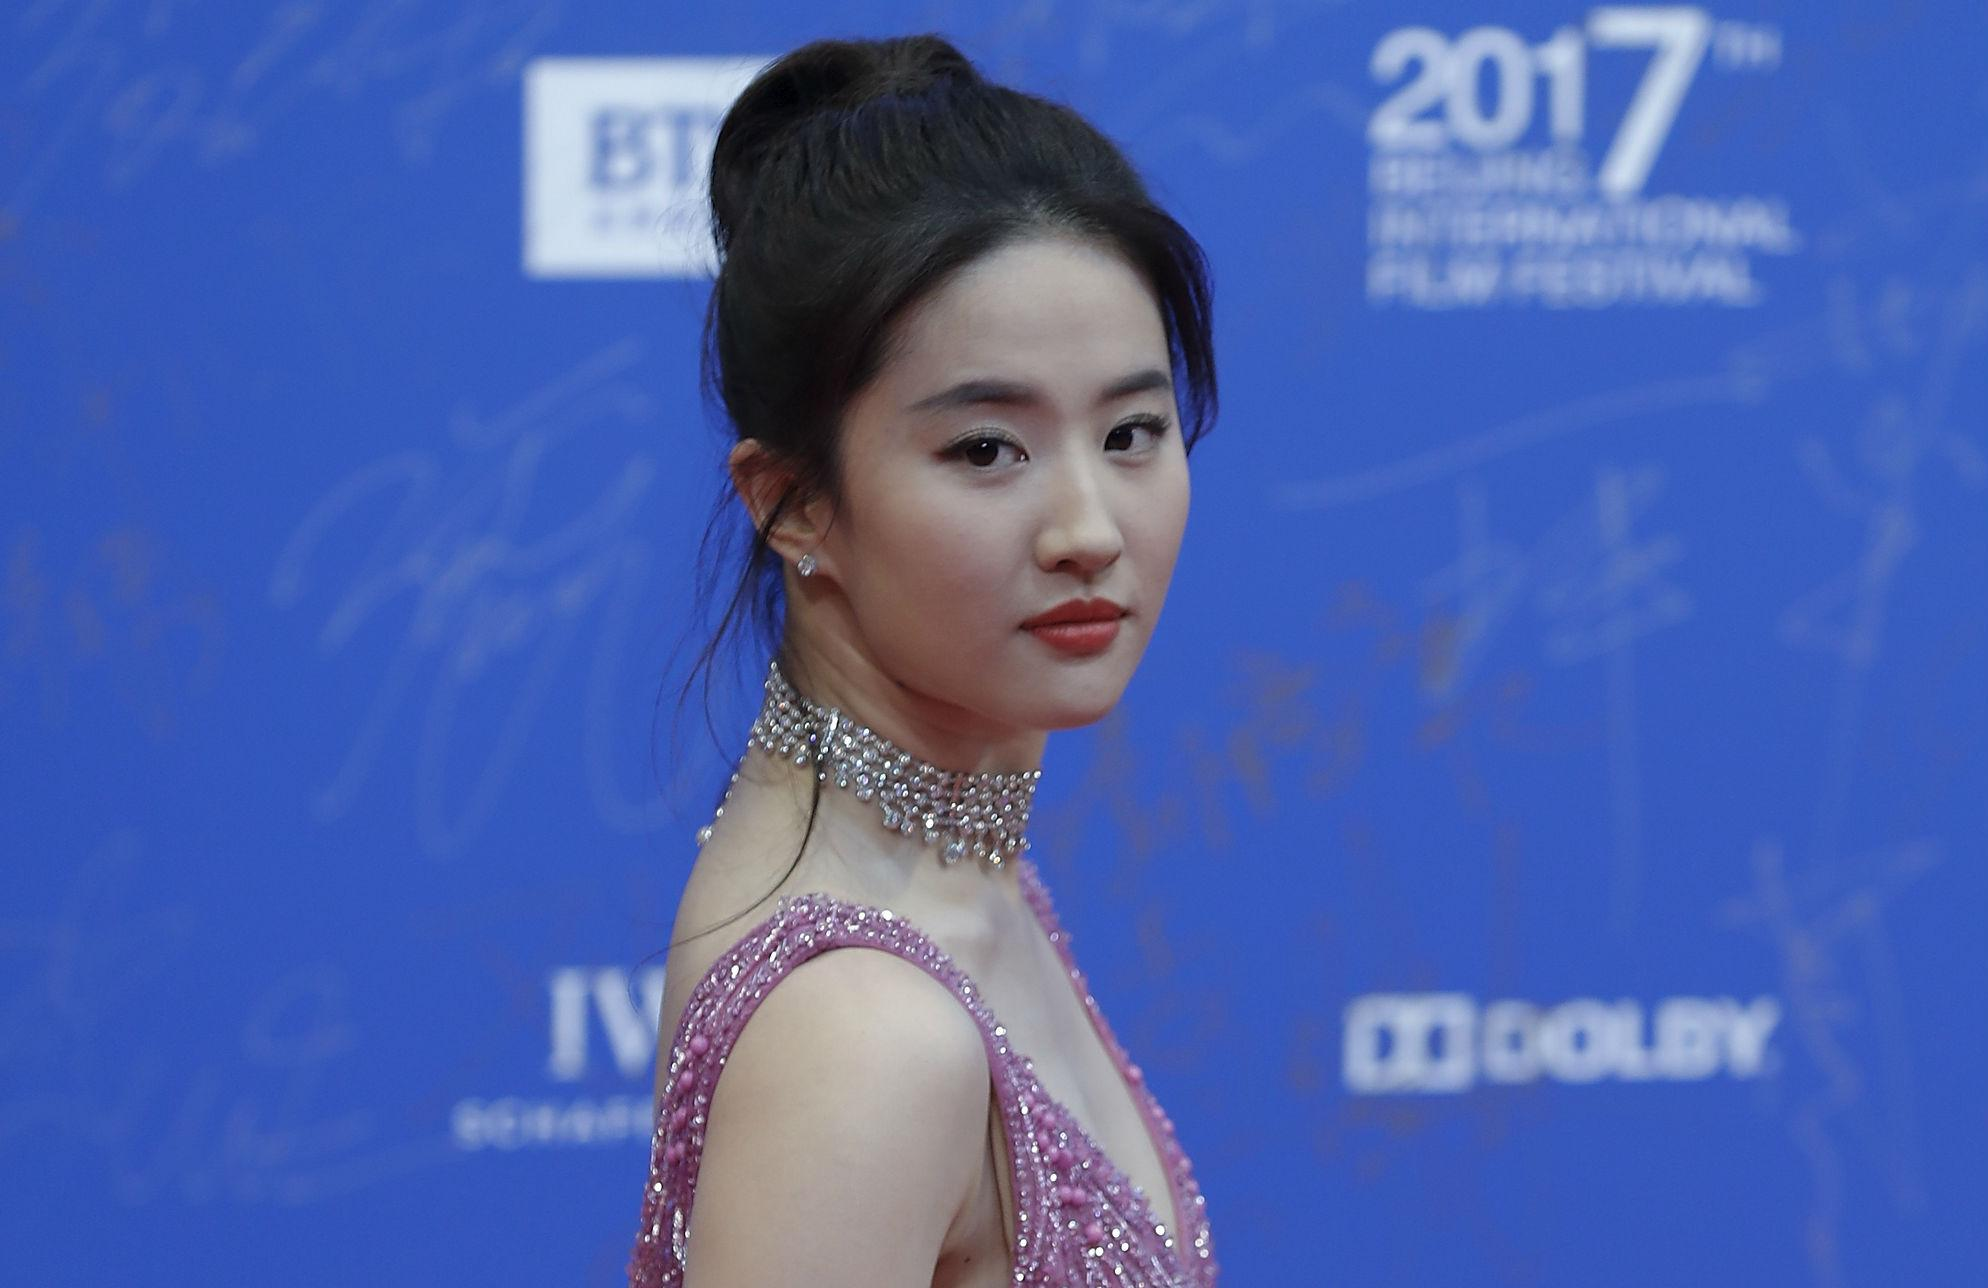 Disney's Live-Action Mulan Has Been Cast